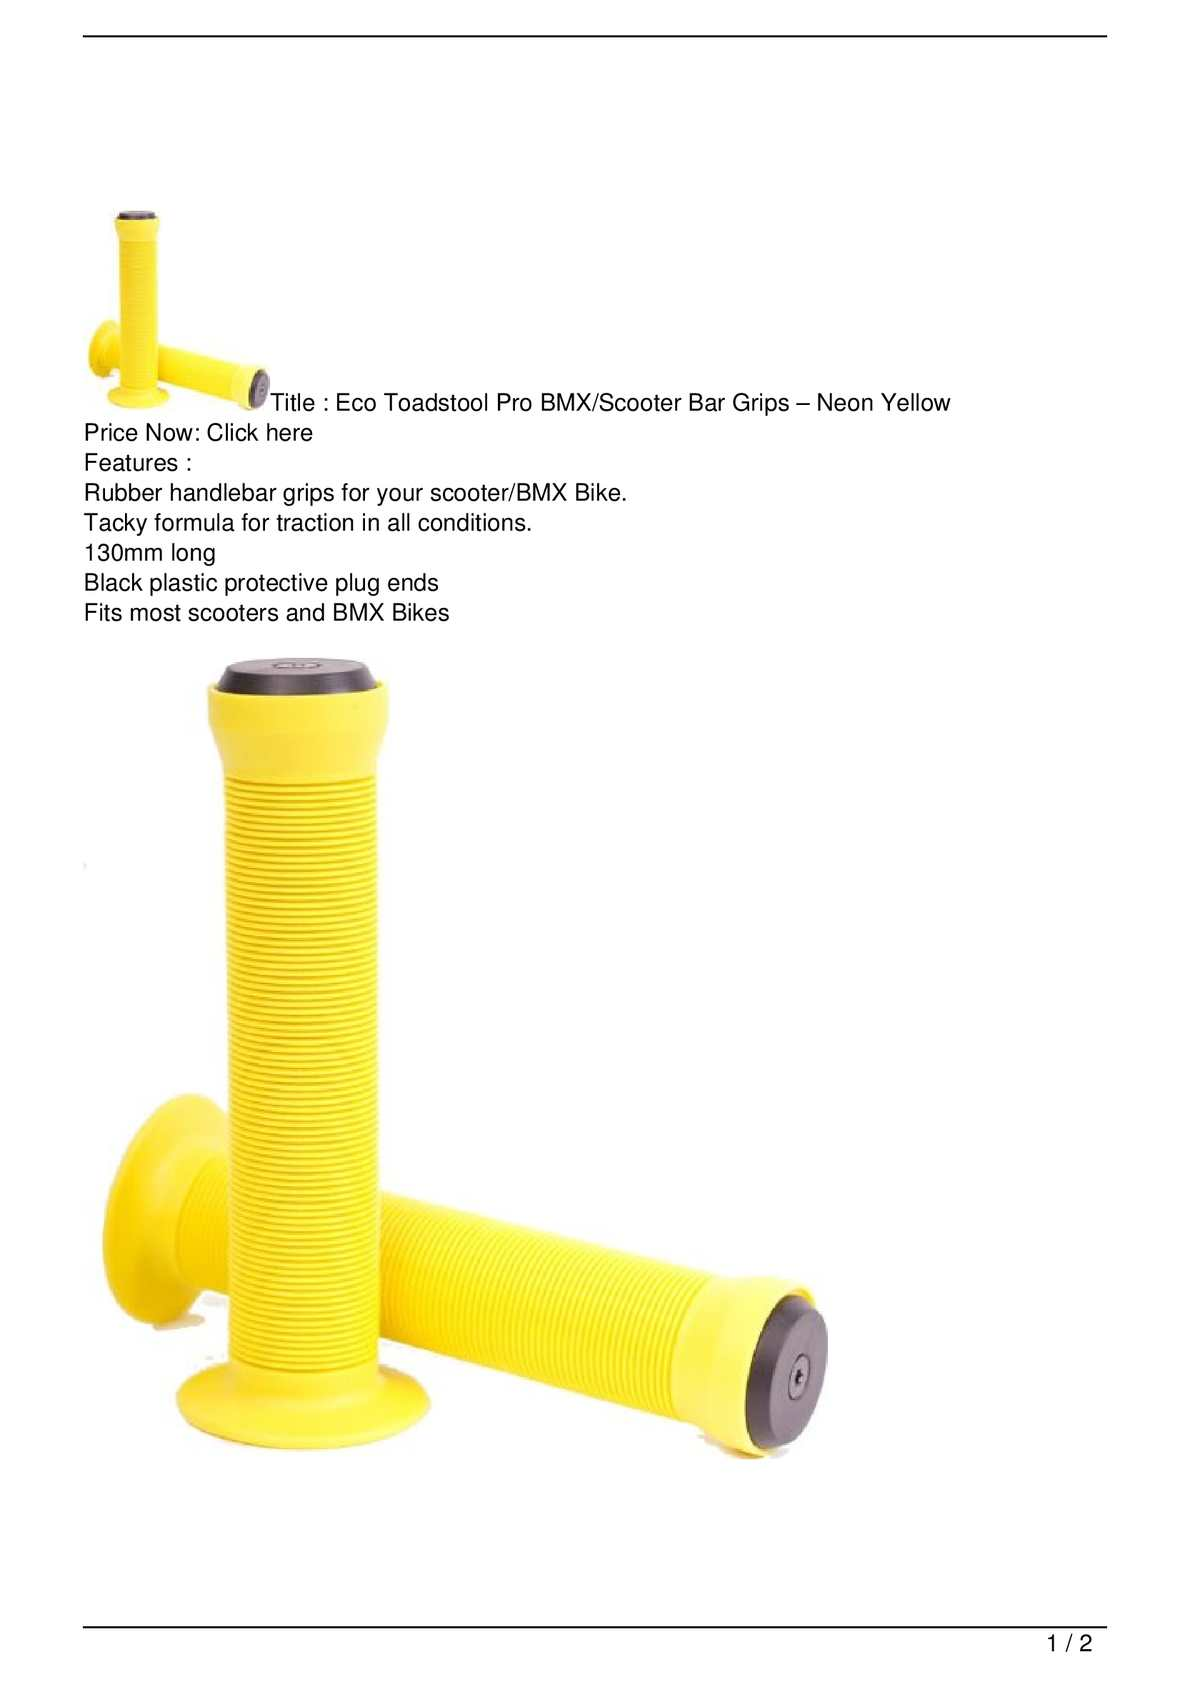 BMX Grips Eco Toadstool Scooter